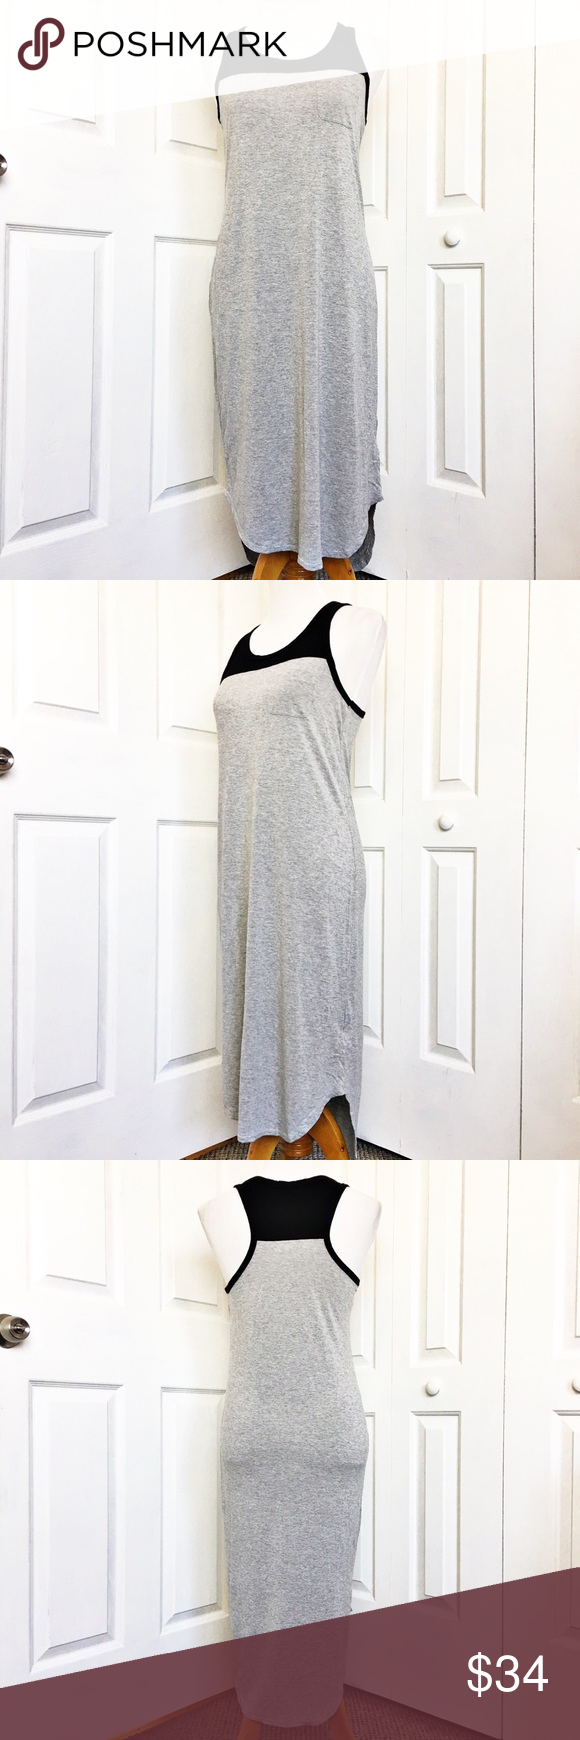 """Joe Fresh Maxi Dress Adorable dress by Joe Fresh.  Black and gray in color and features a scoop neck, curved hem, and from chest pocket.  Material is 100% rayon.  Measurements laid flat: bust 17"""", waist 17.5"""", hip 19"""" and length from top of shoulder to hem in front 41"""" and back 44.5"""".  EUC. Joe Fresh Dresses Maxi"""